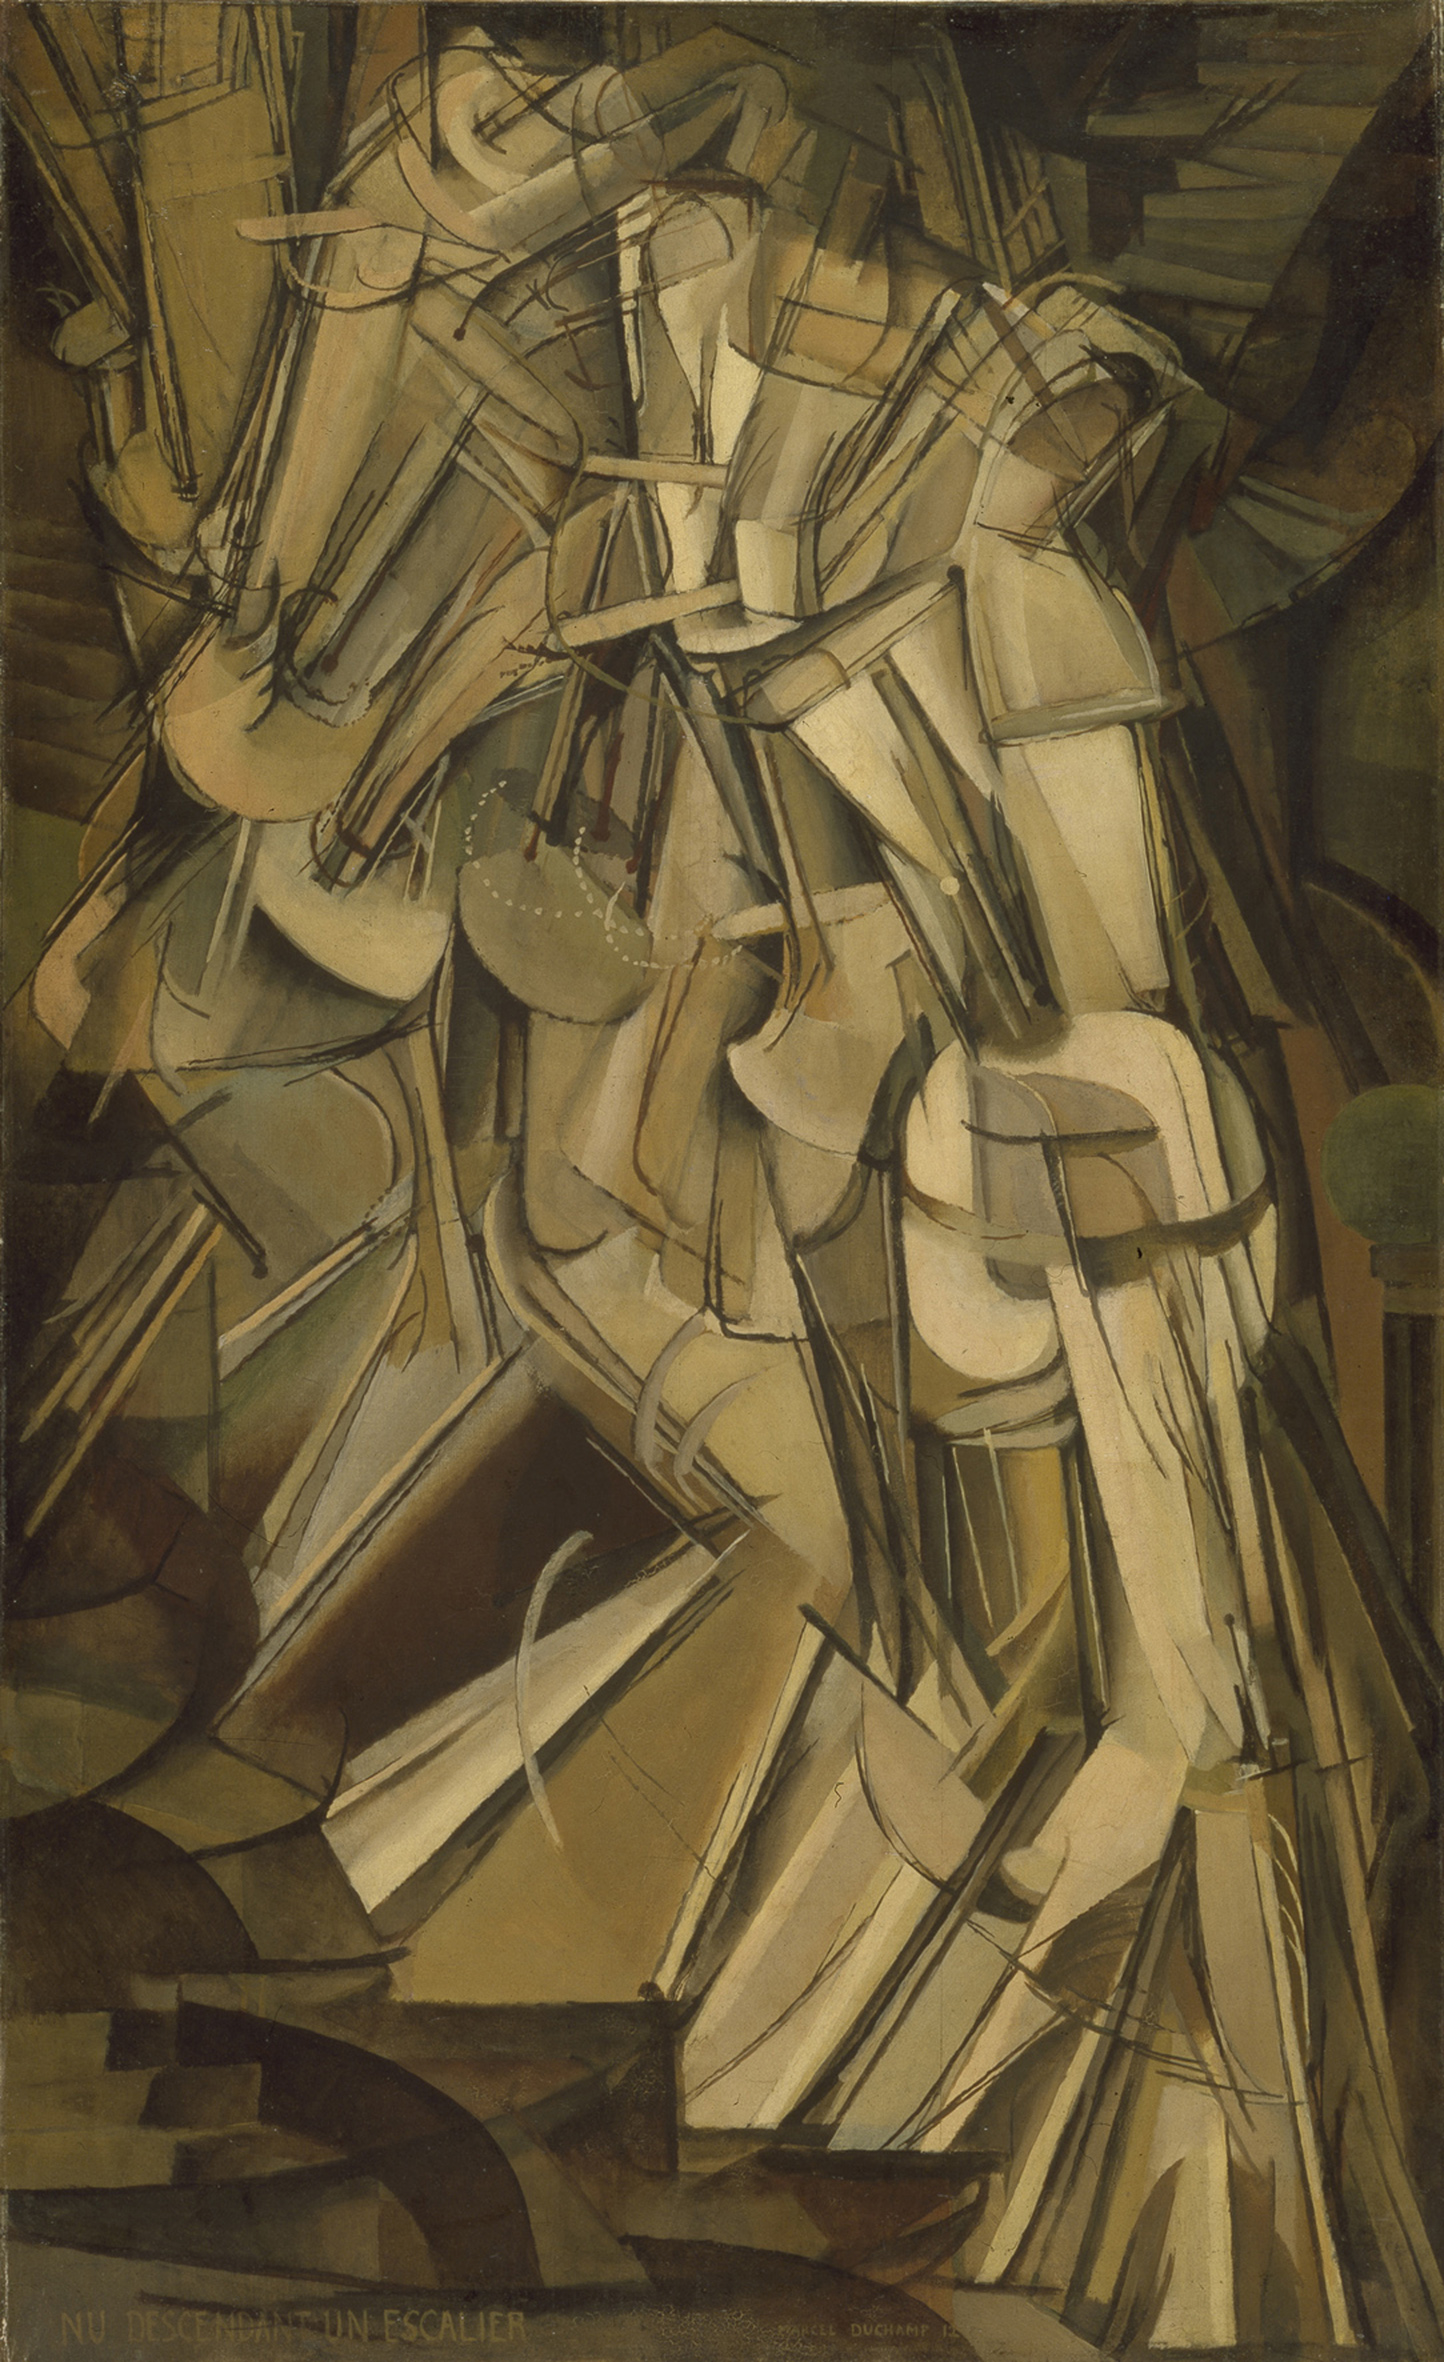 Nude Descending a Staircase No. 2 Marcel Duchamp teen addiction | Comments: